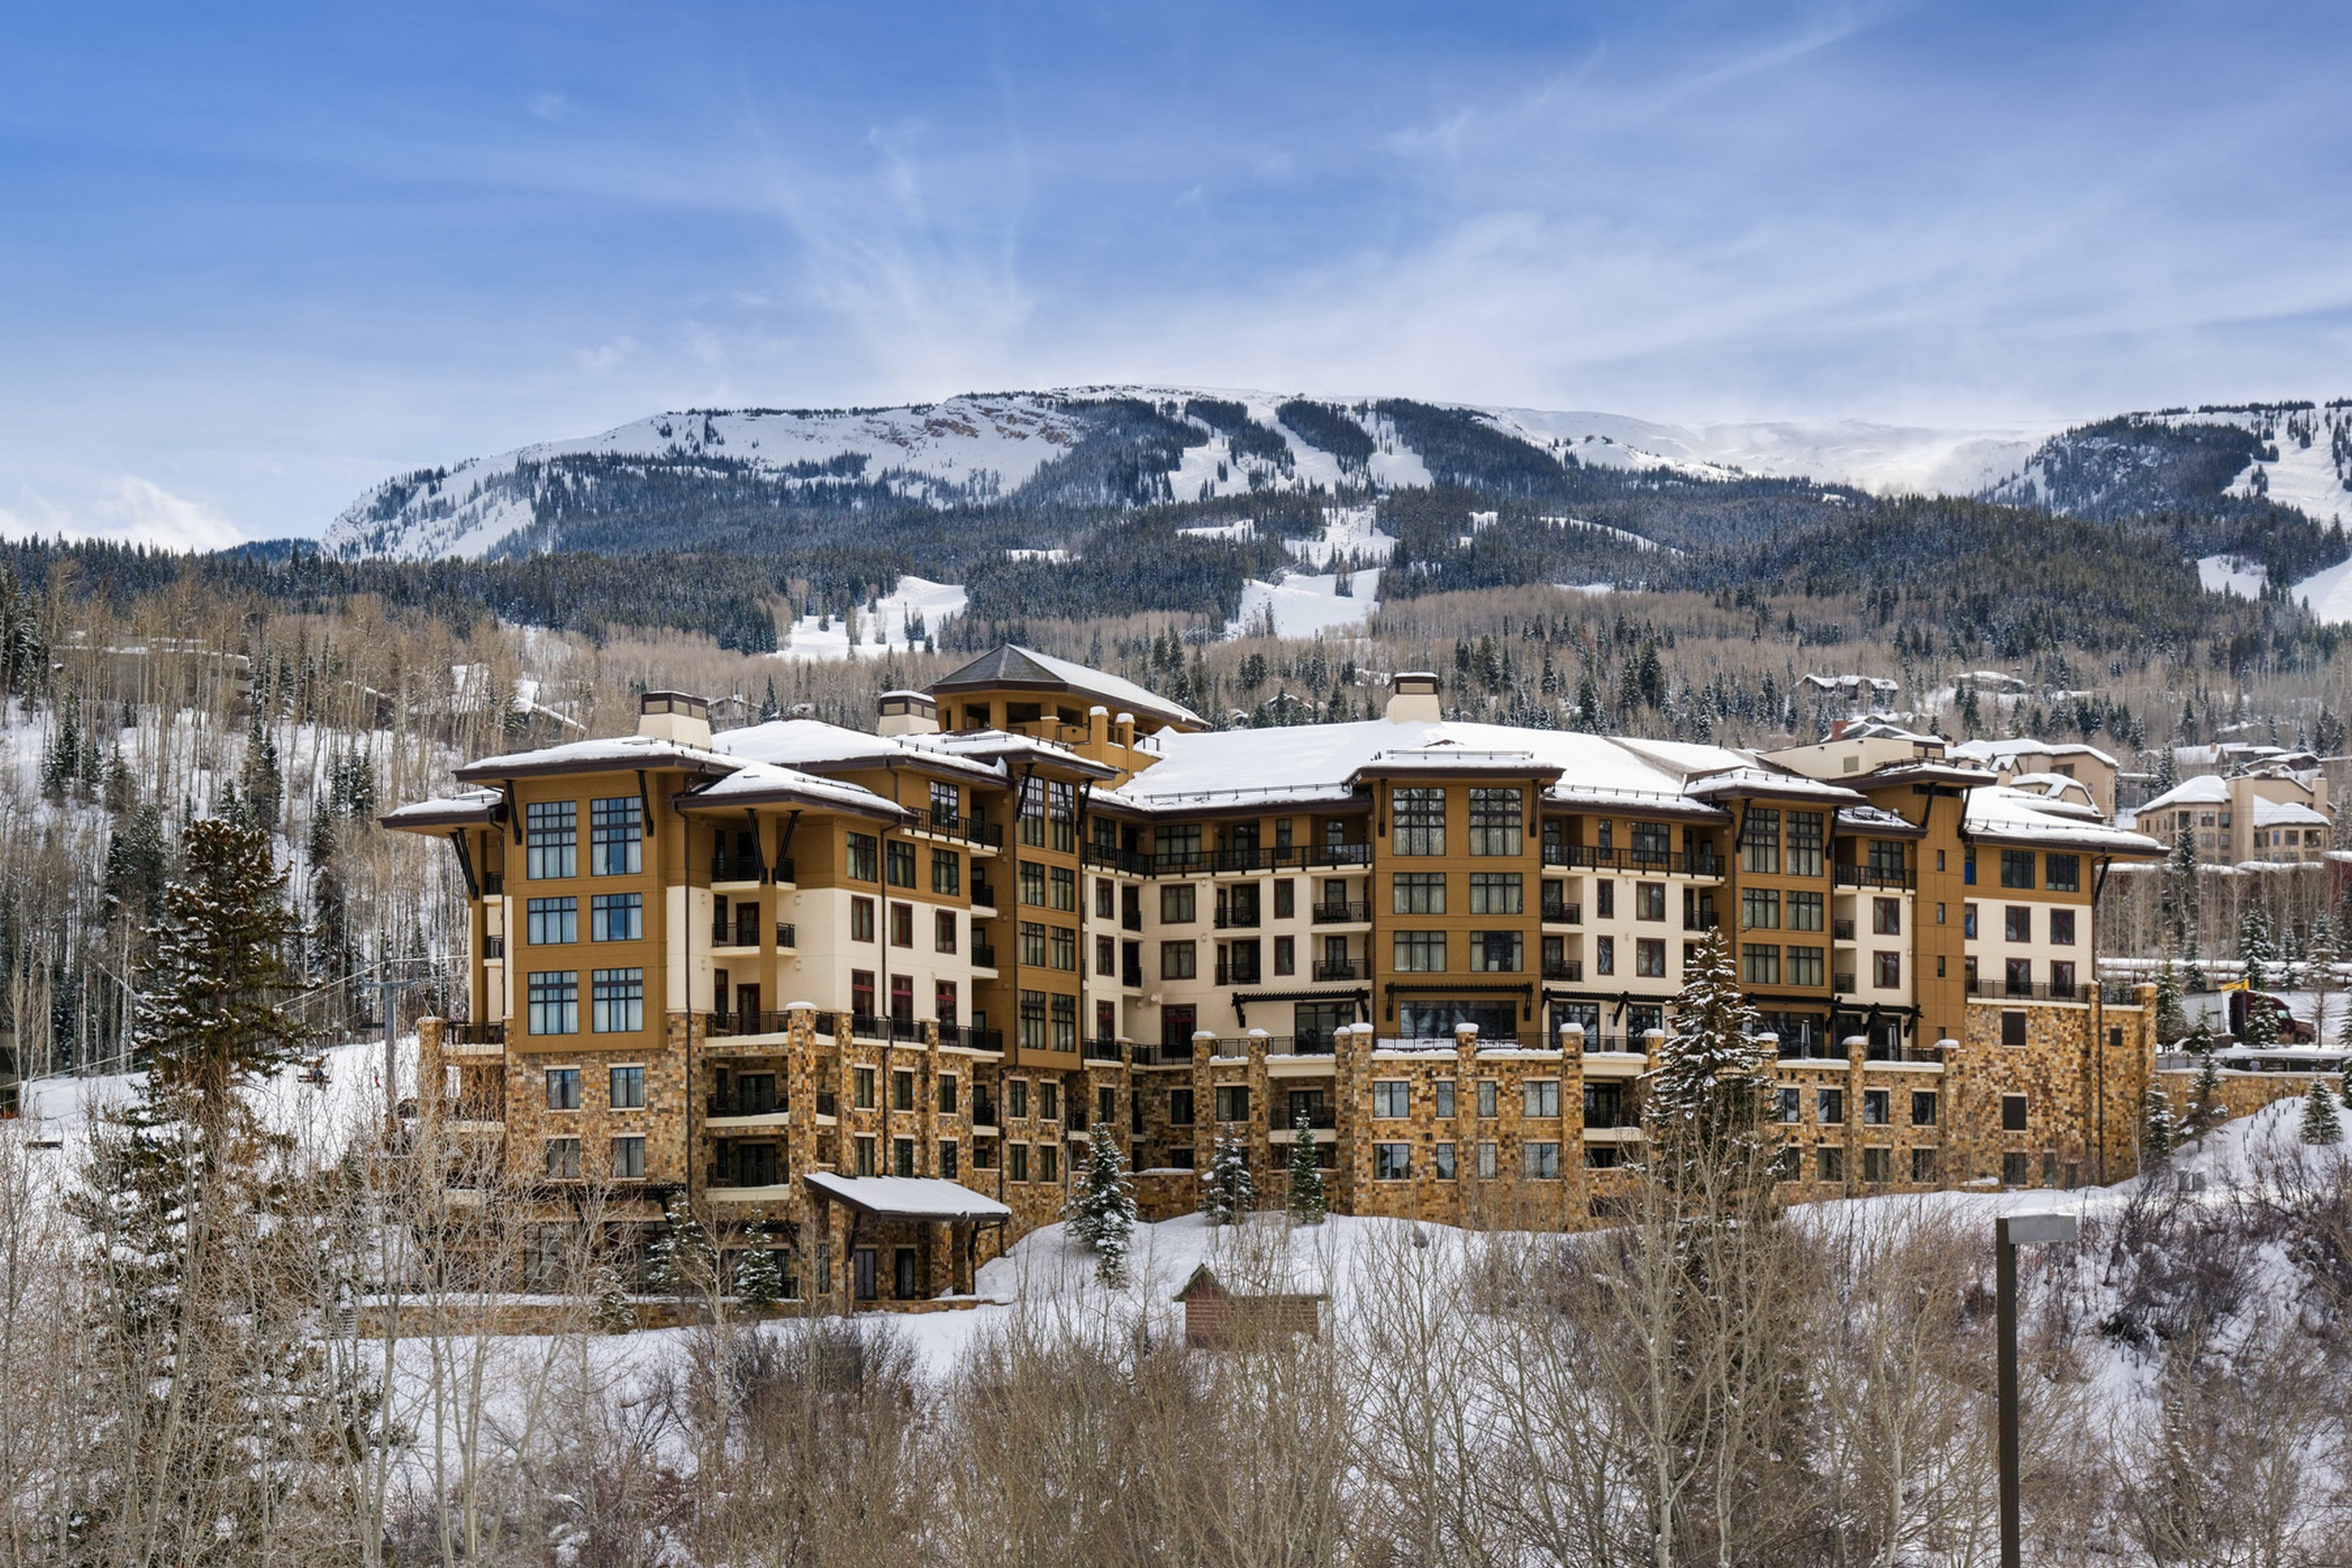 130 Wood Road, unit 214 Snowmass Village Photo 21